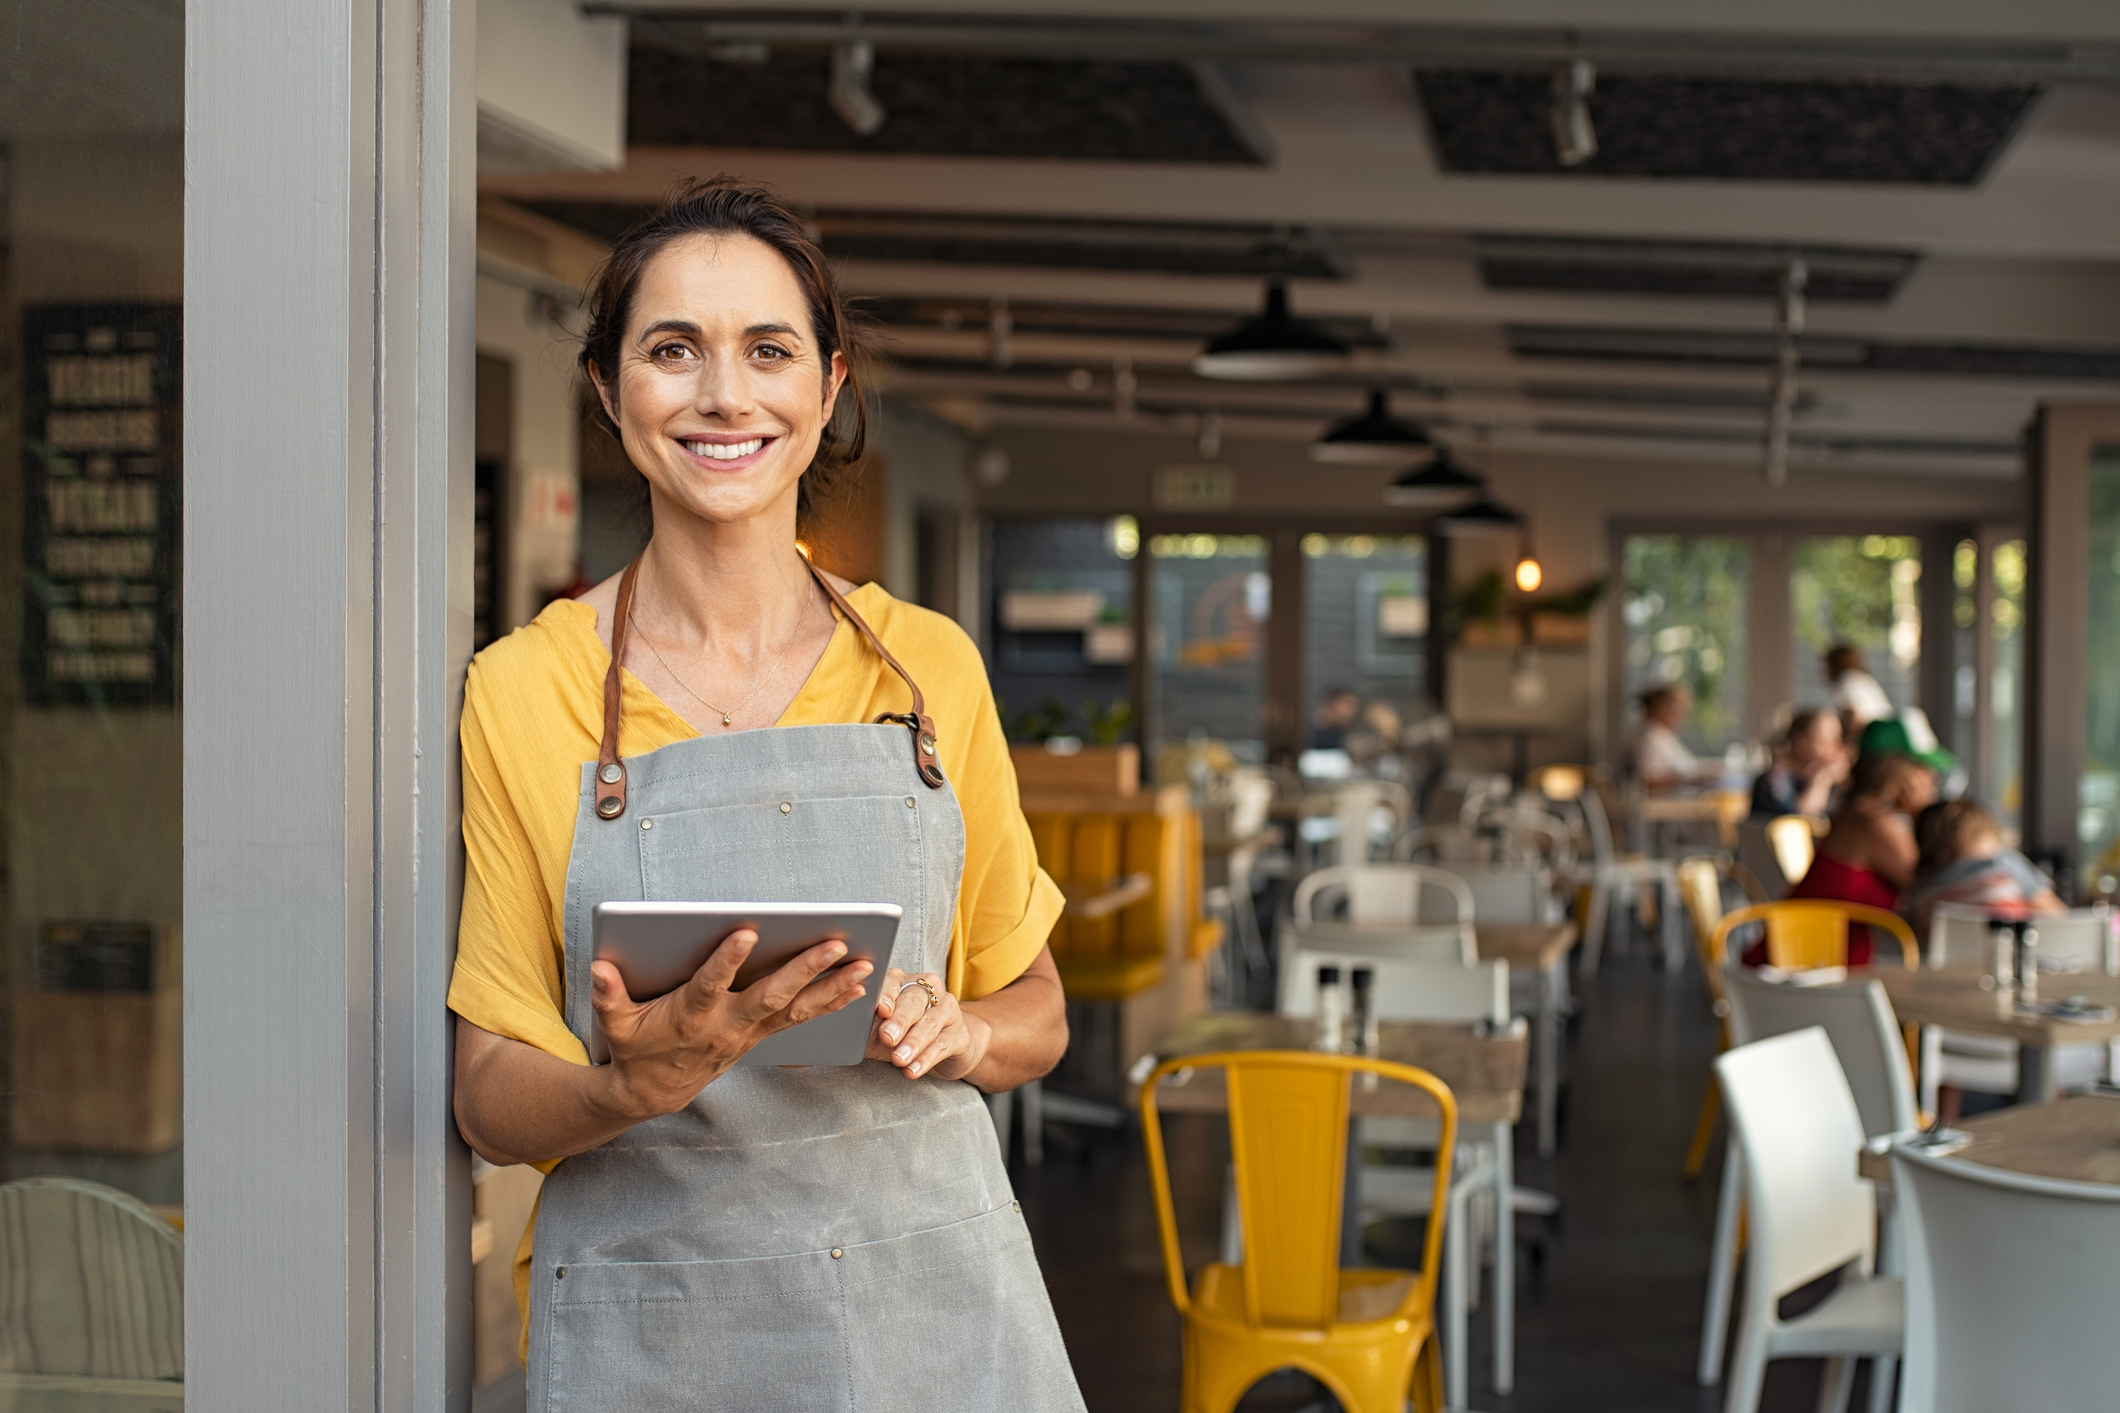 How the Small Business Association (SBA) is Helping Small Business Owners